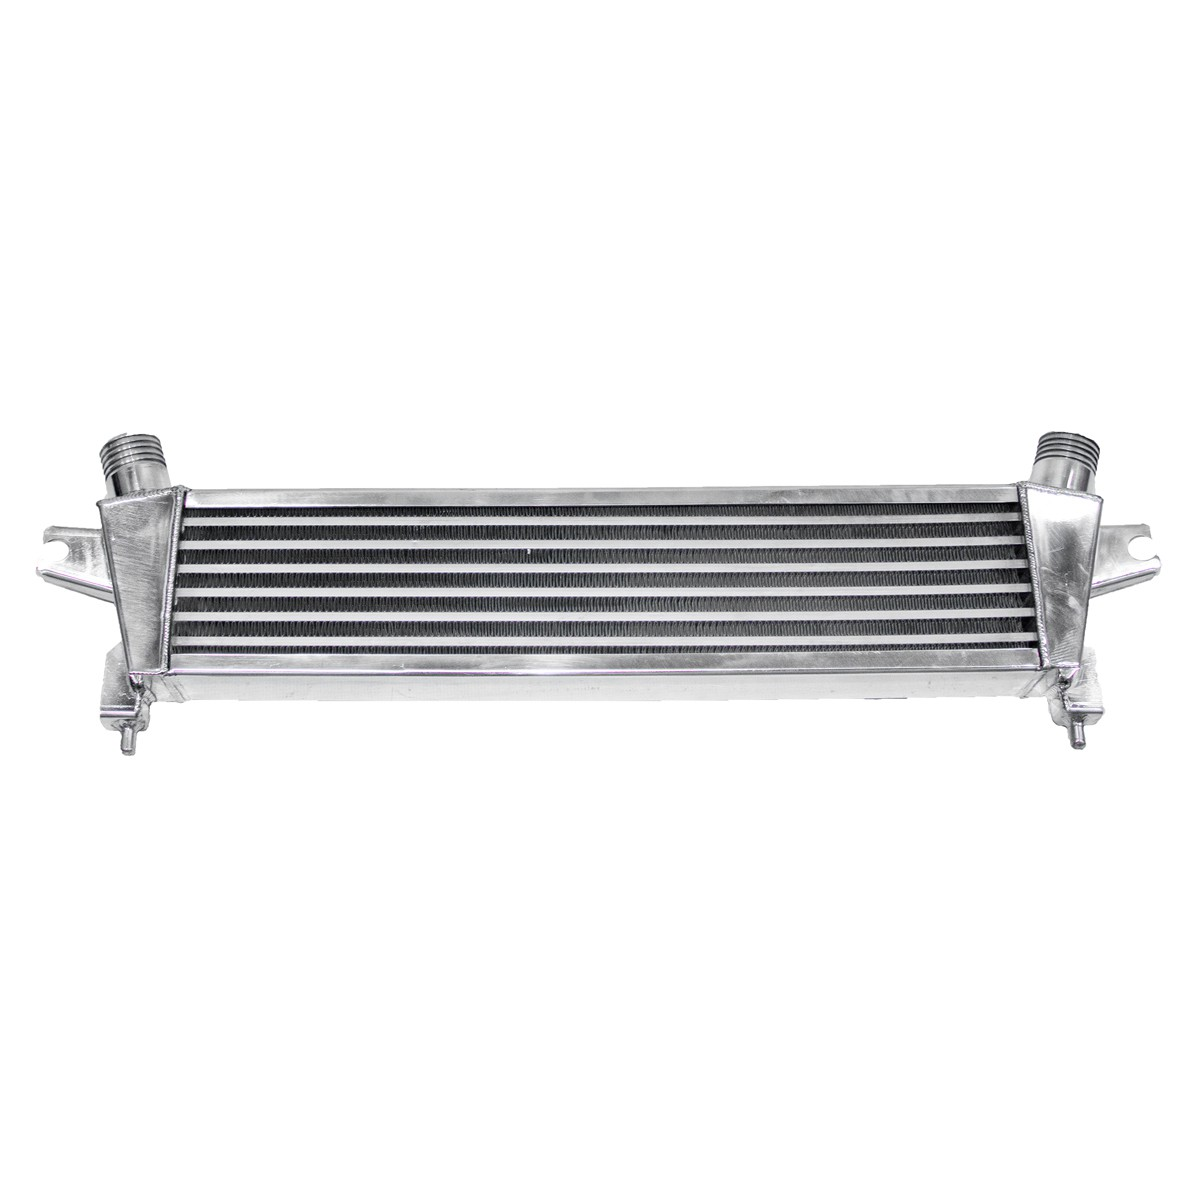 INTERCOOLER S10 2.8 DÍESEL